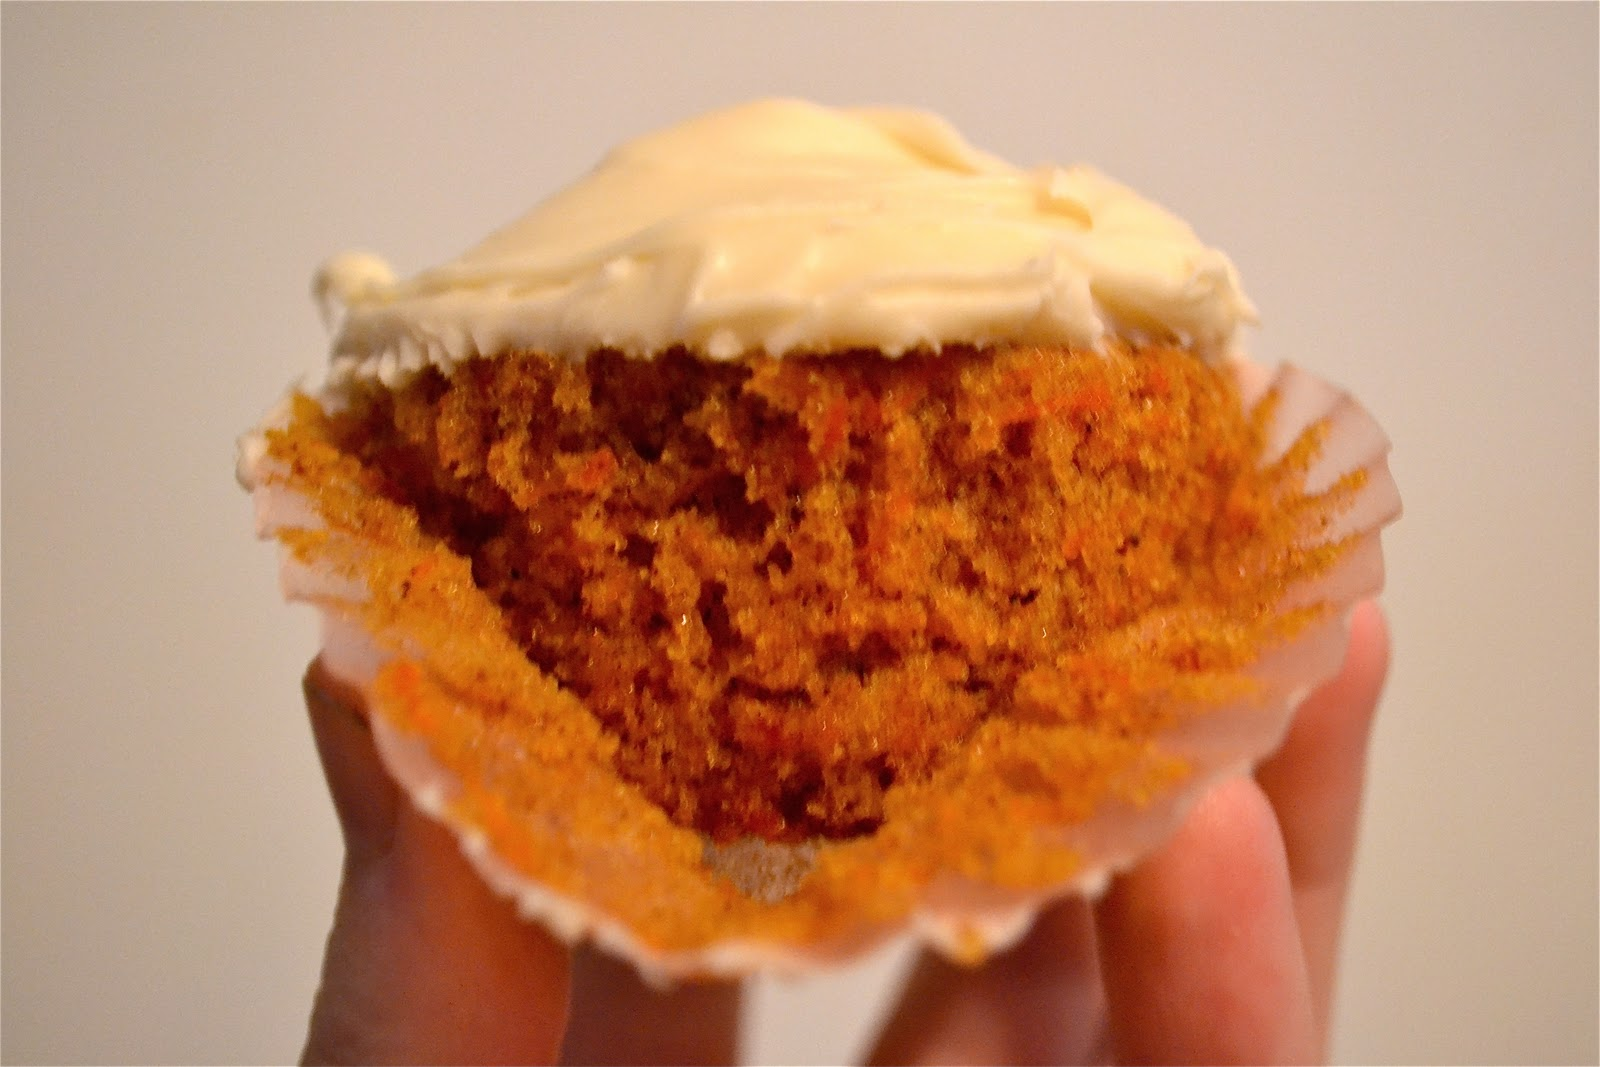 Carrot Cupcakes with Cream Cheese Frosting A Dash of Megnut